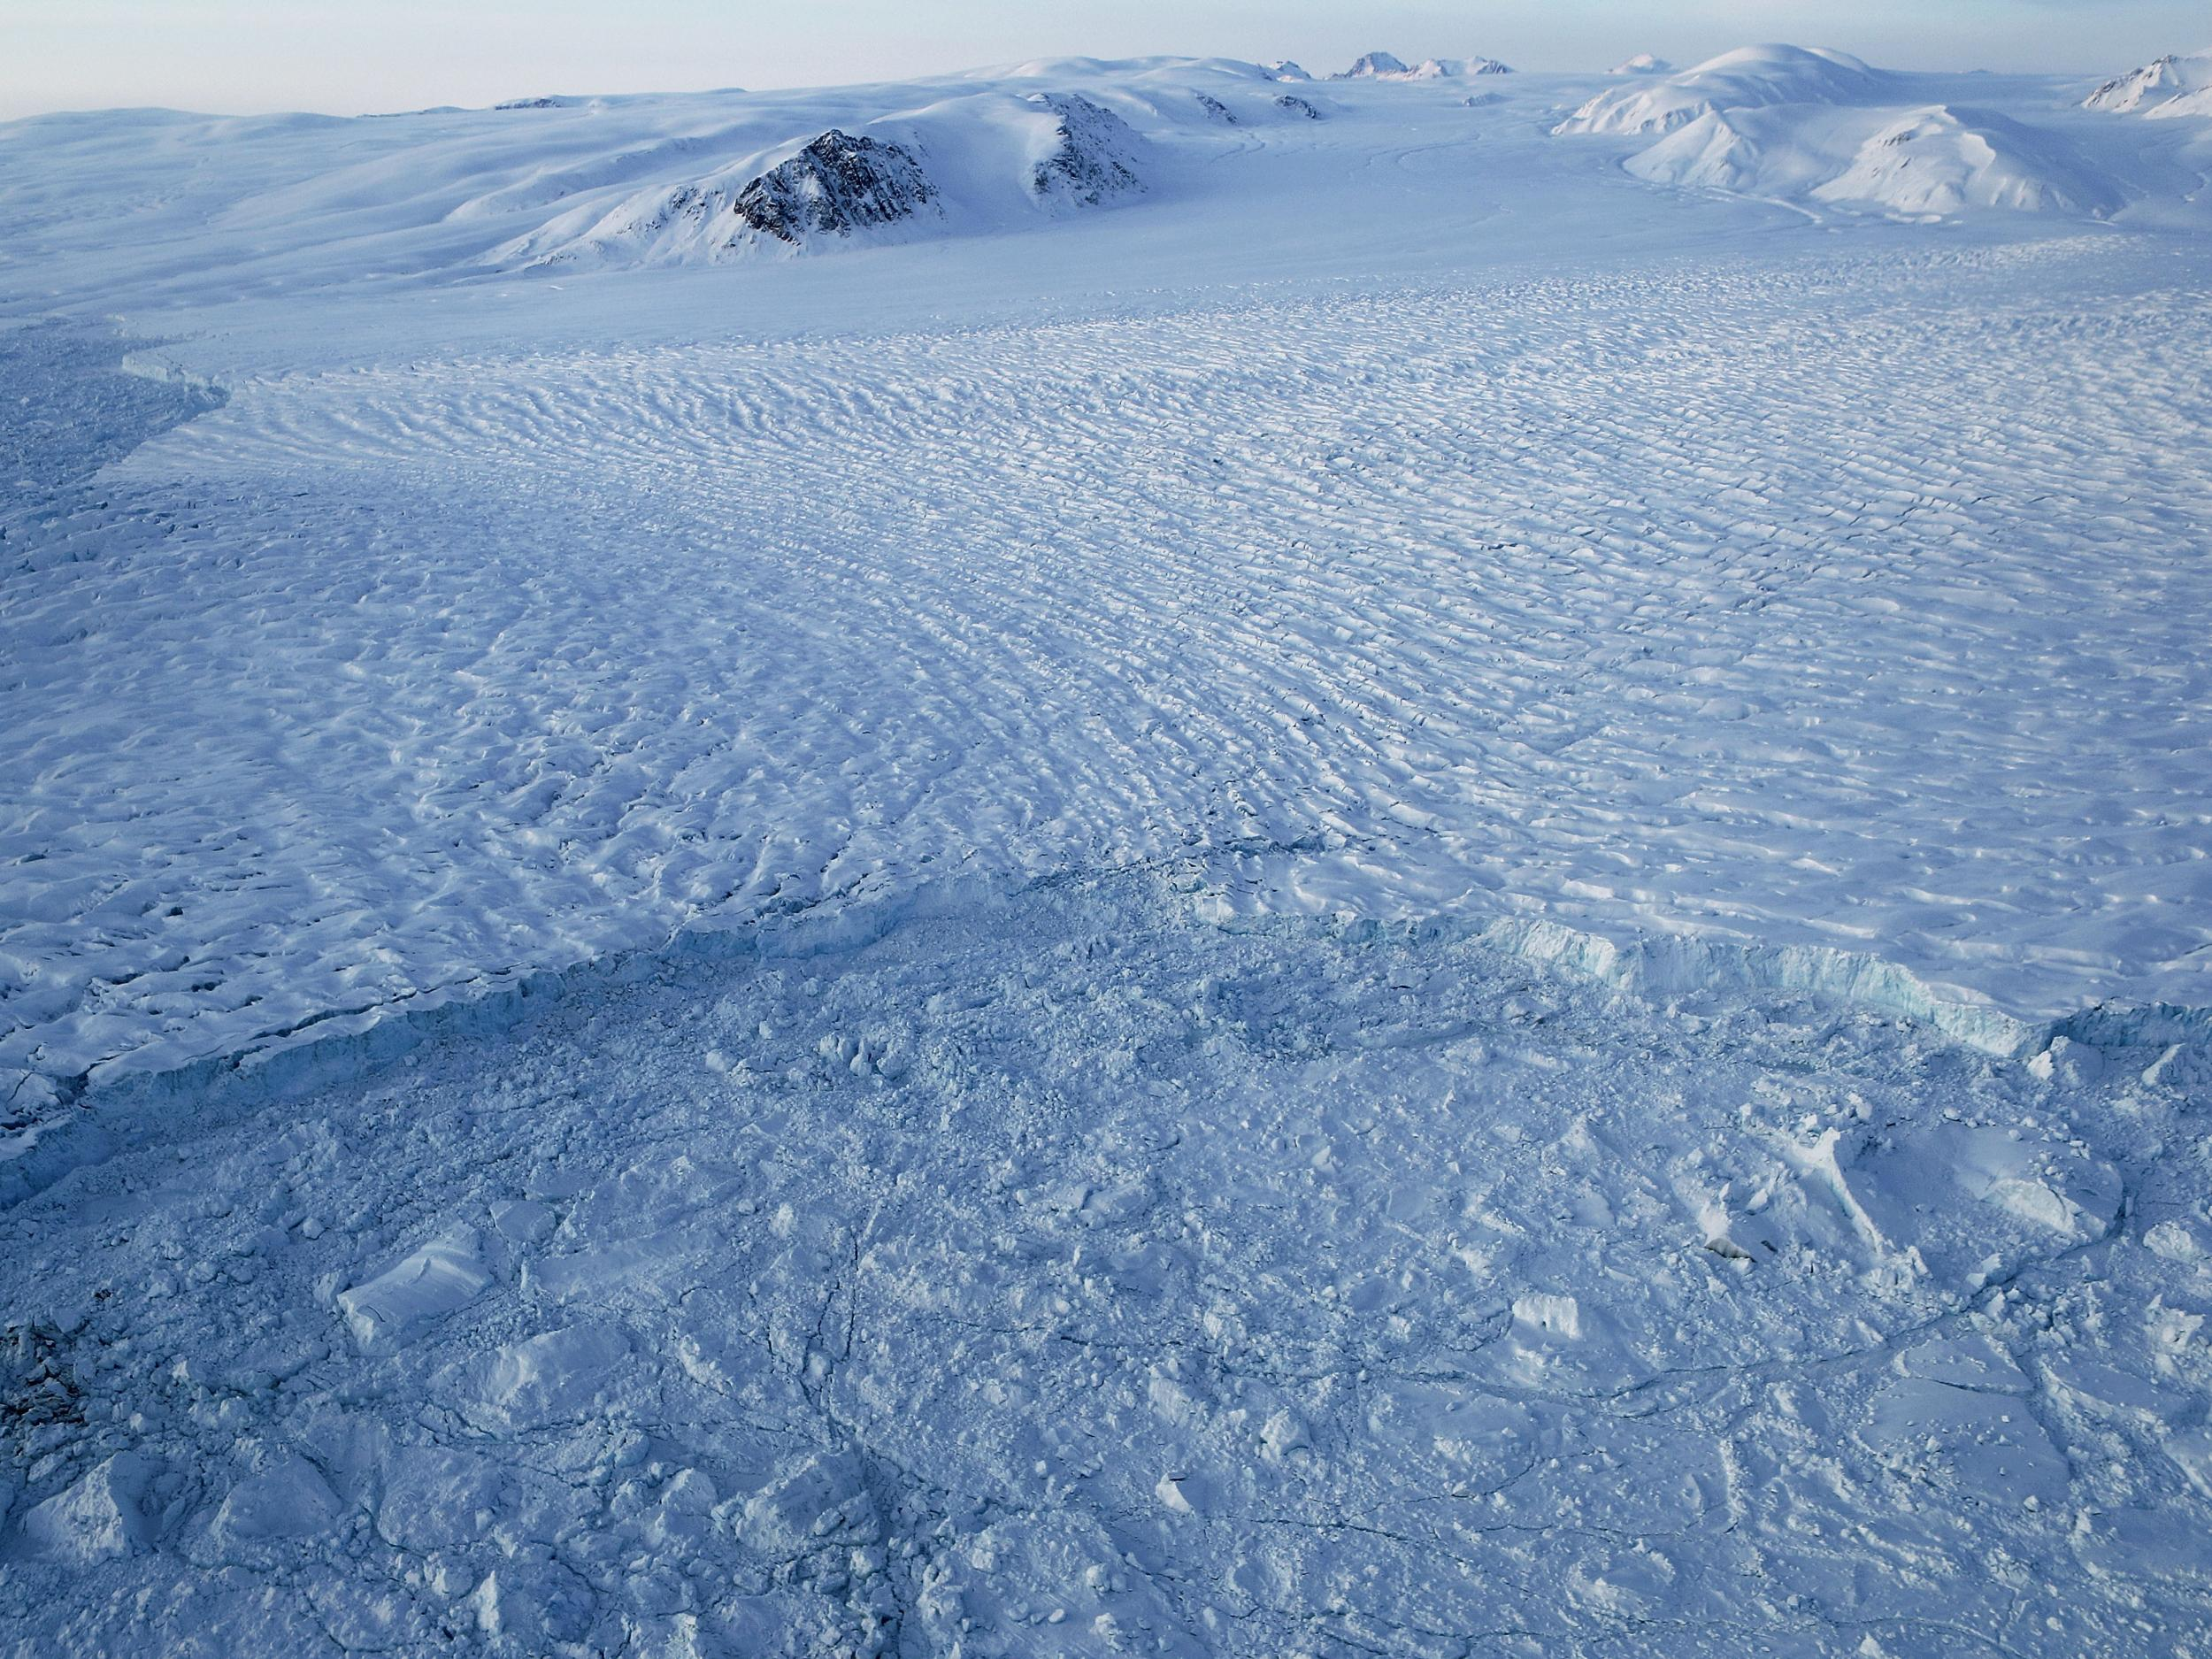 Arctic is warming at twice the rate of the rest of the planet, scientists warn